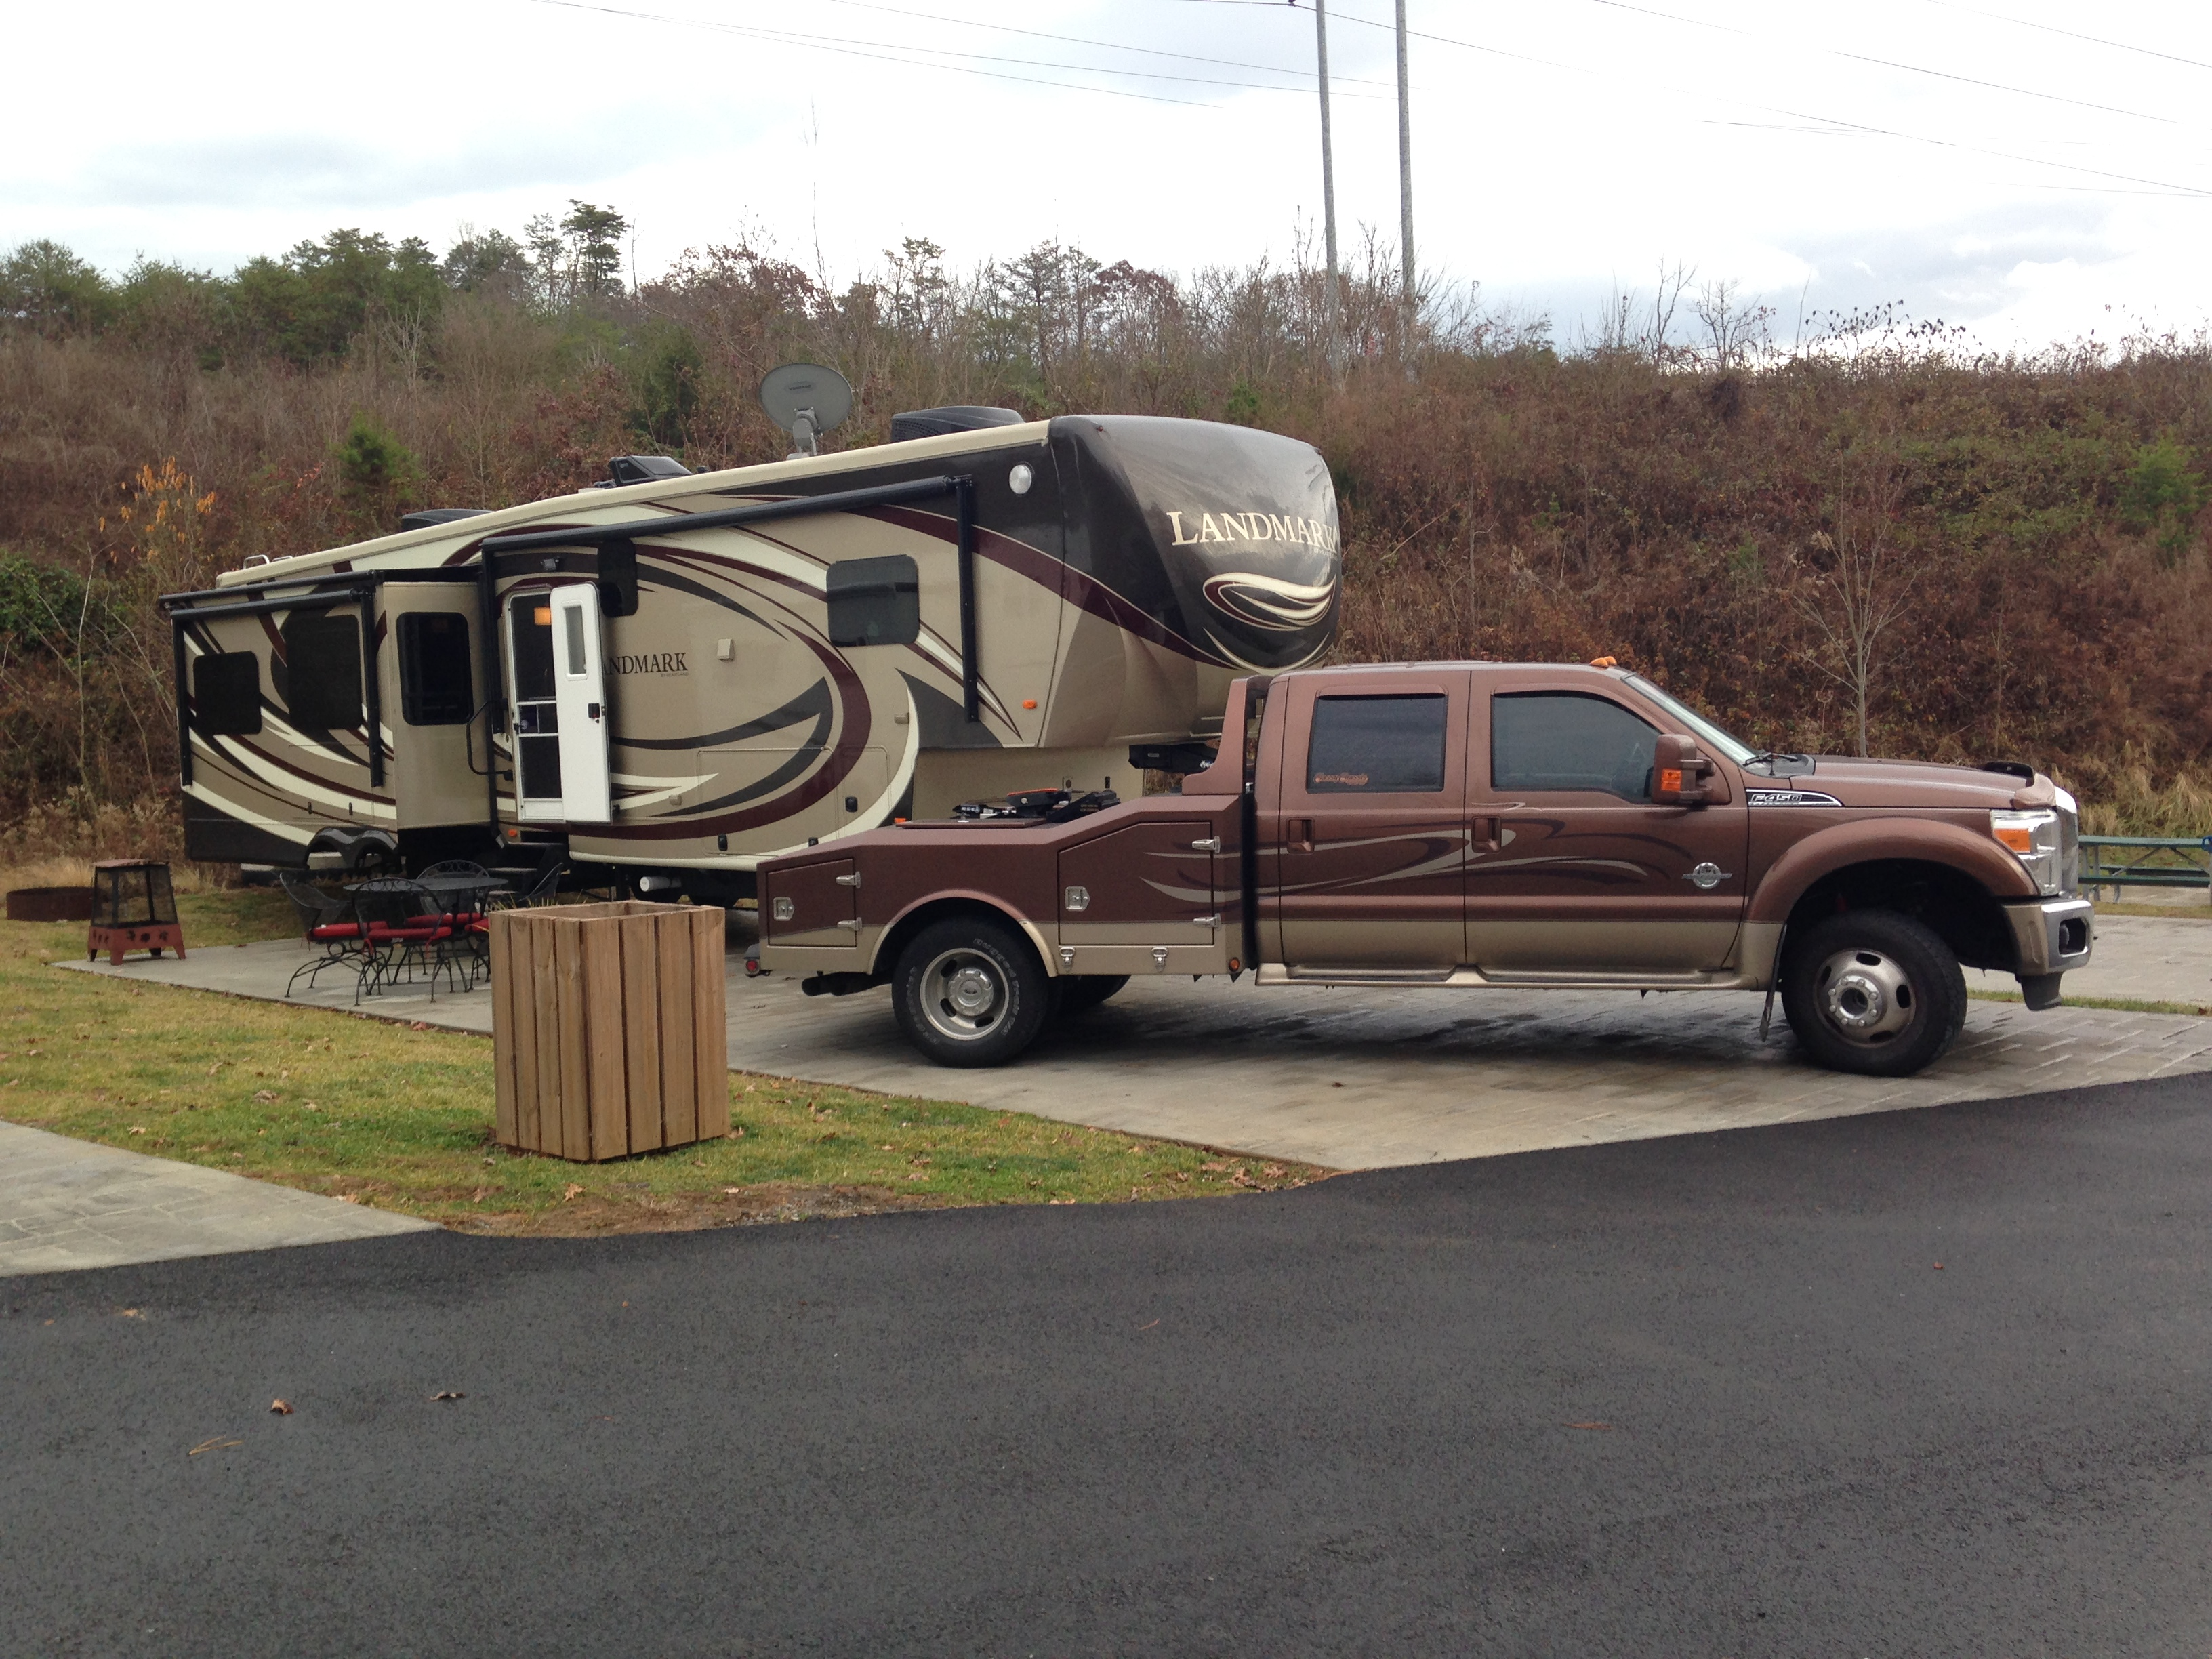 Site 48 - Bear Cove - Pigeon Forge, TN